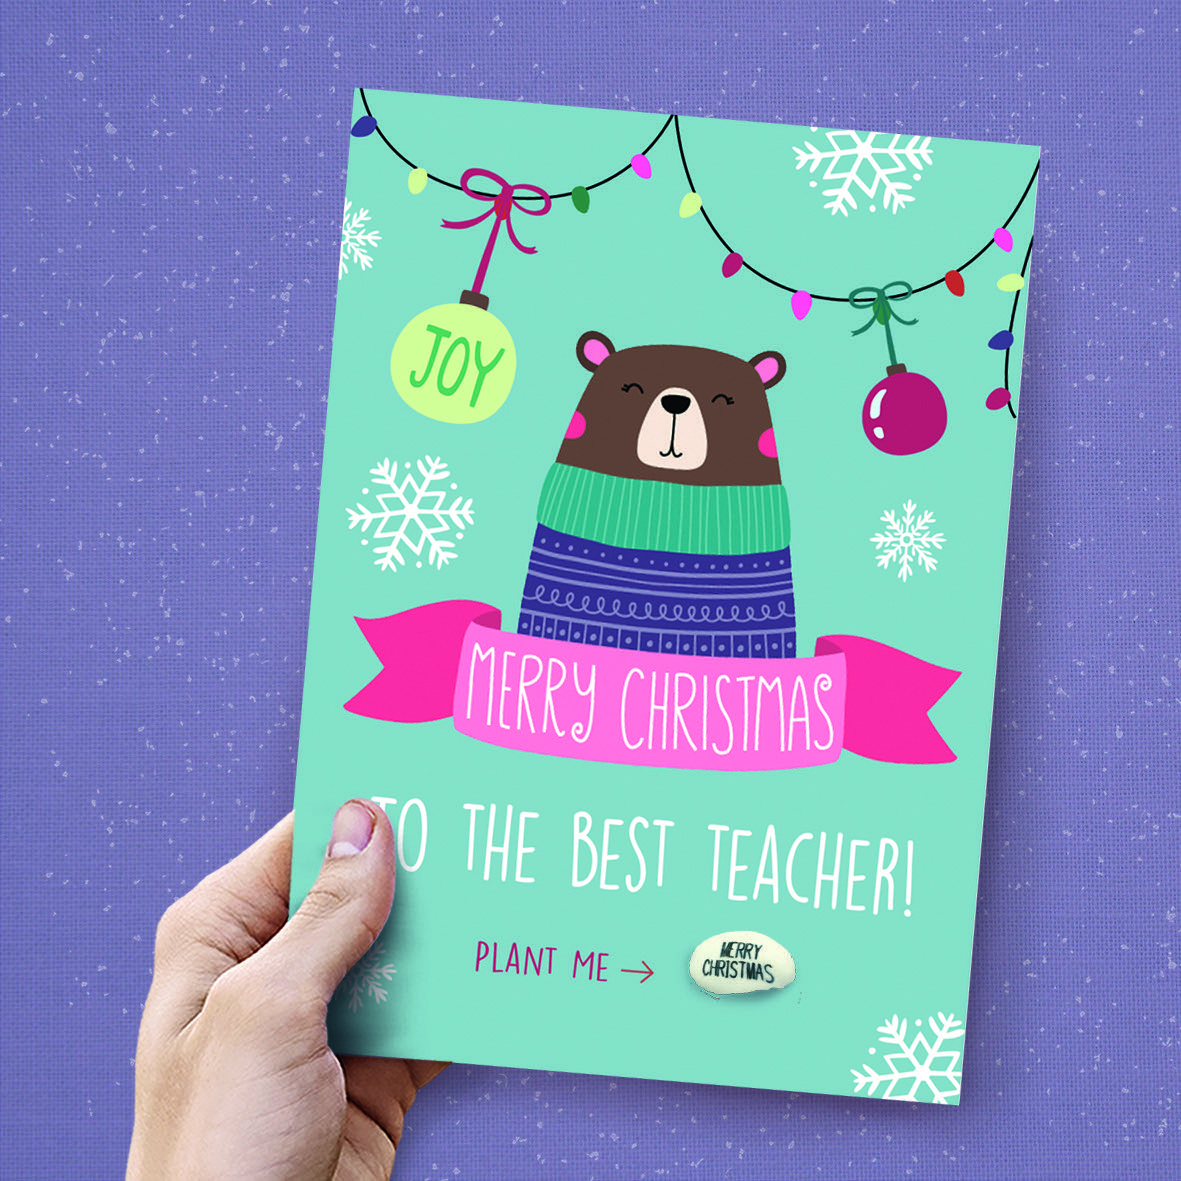 Festive designs and Christmas Cards by Lucy and Lolly